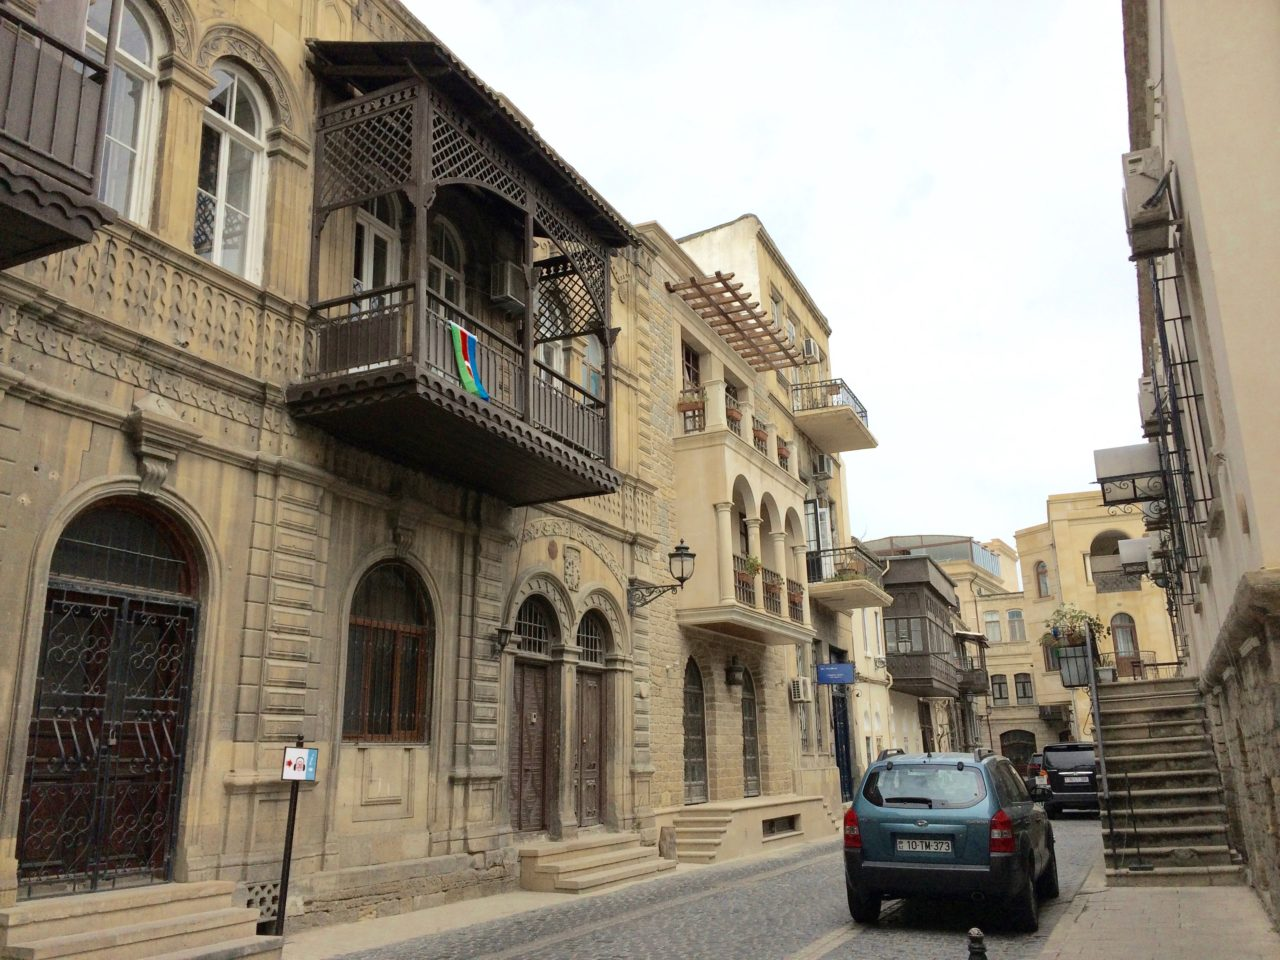 Lonely car in Baku old town